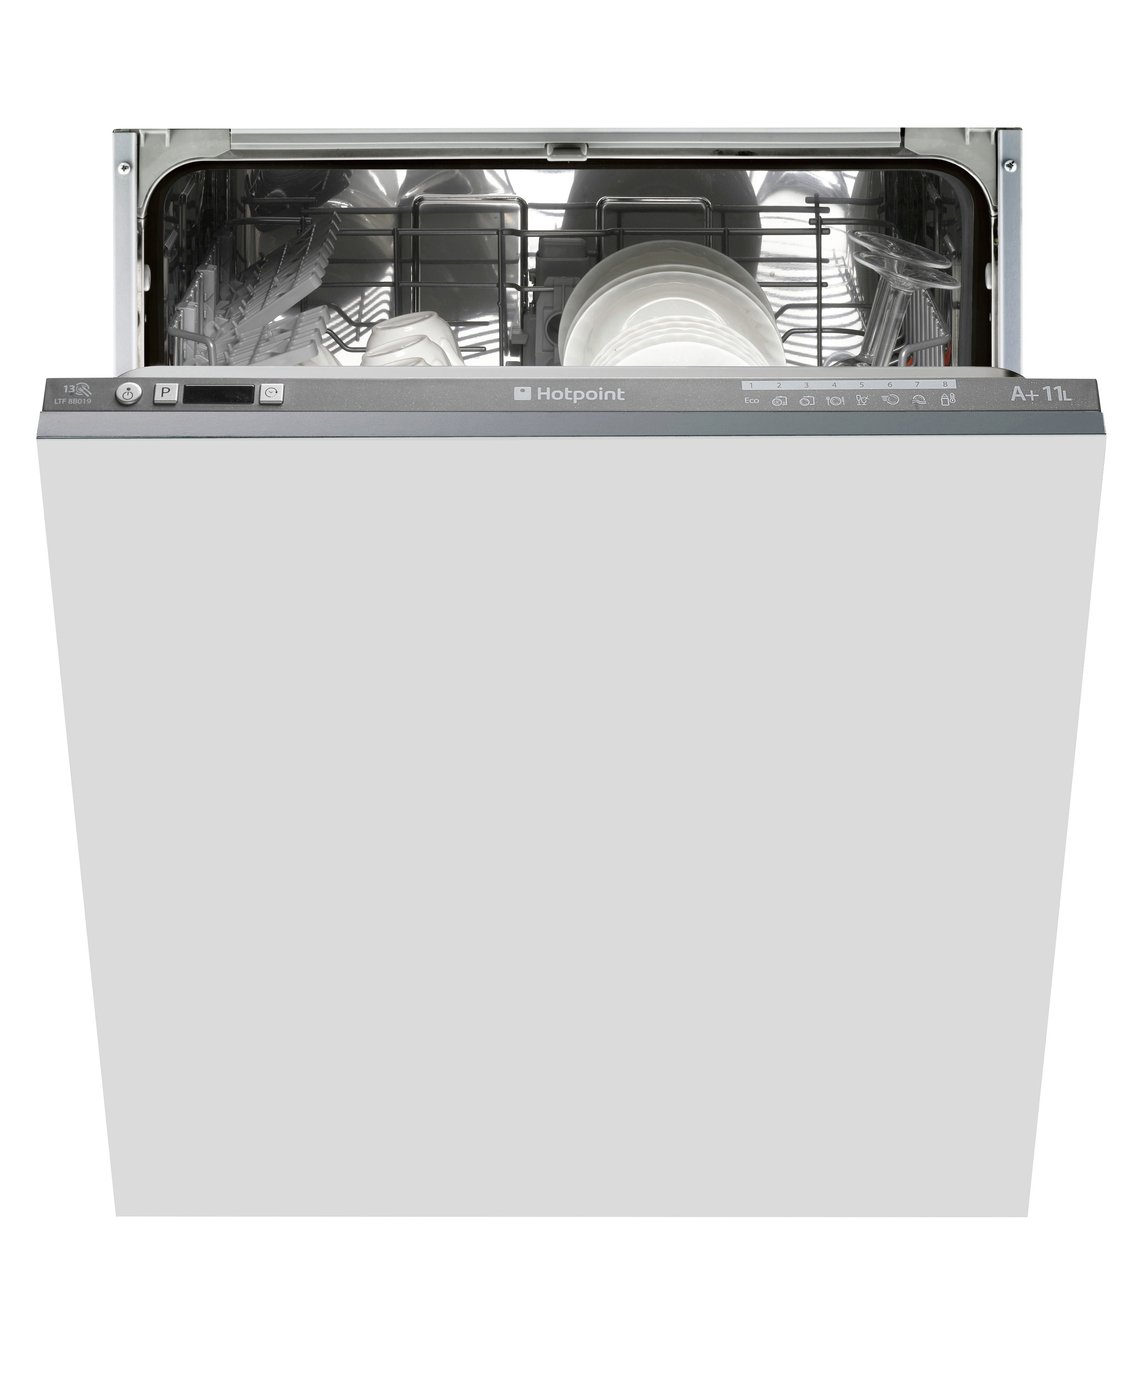 Hotpoint Aquarius LTF 8B019 C Built-in Dishwasher - Graphite